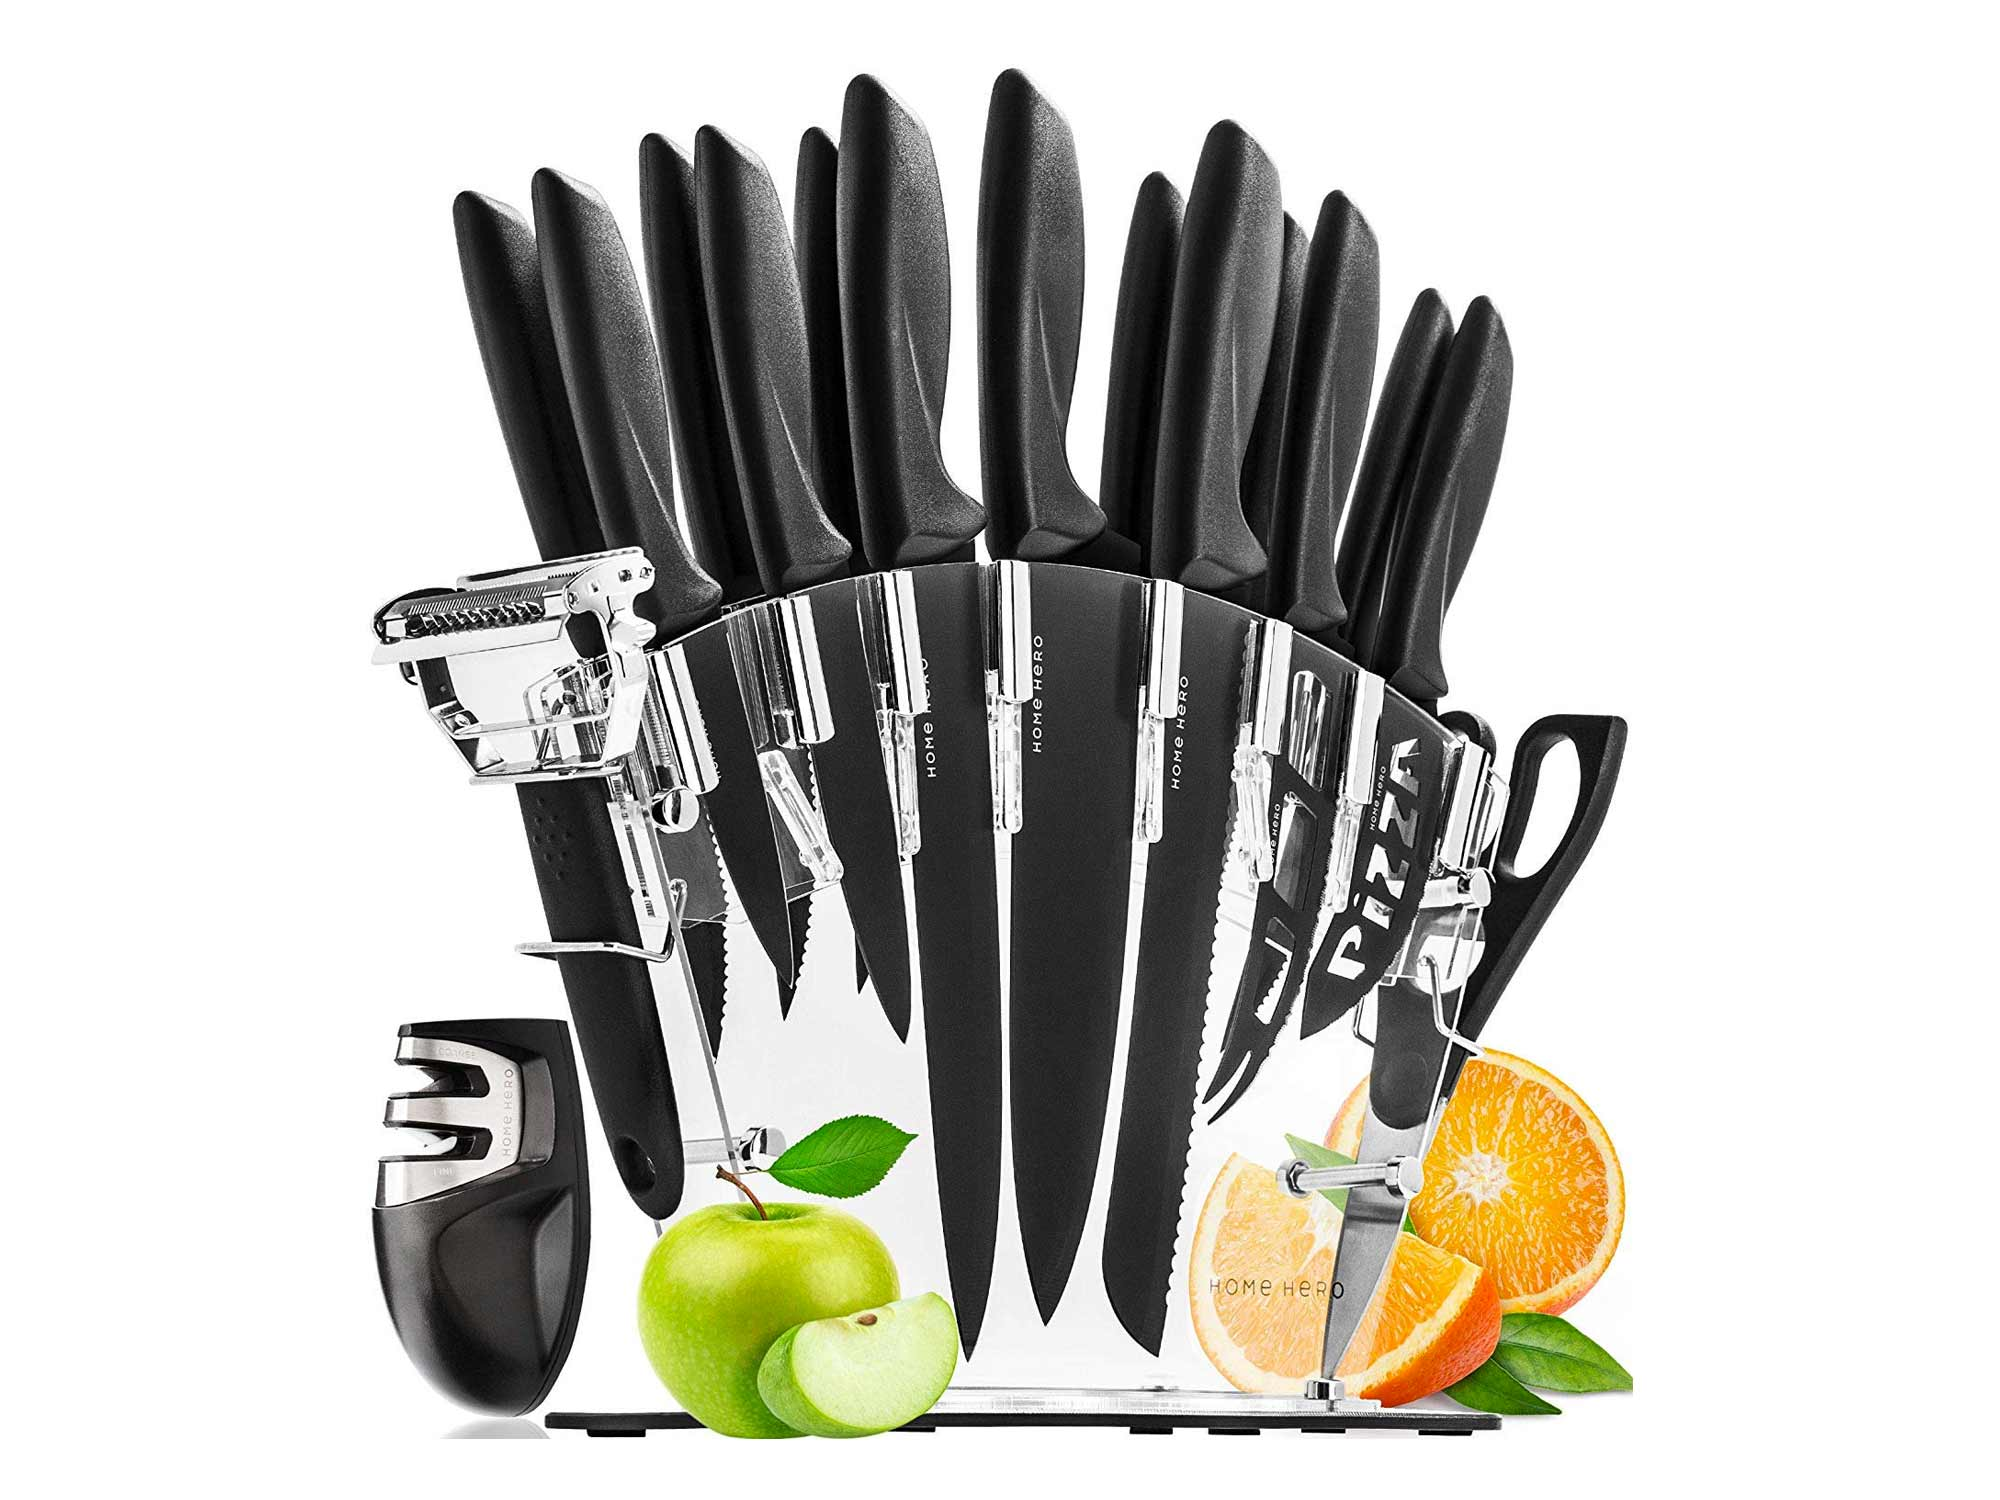 Stainless Steel Knife Set 13 Piece Set Kitchen Knives with Bonus Acrylic Stand, Scissors, 2 Function Peeler and 2 Stage Sharpener by Home Hero